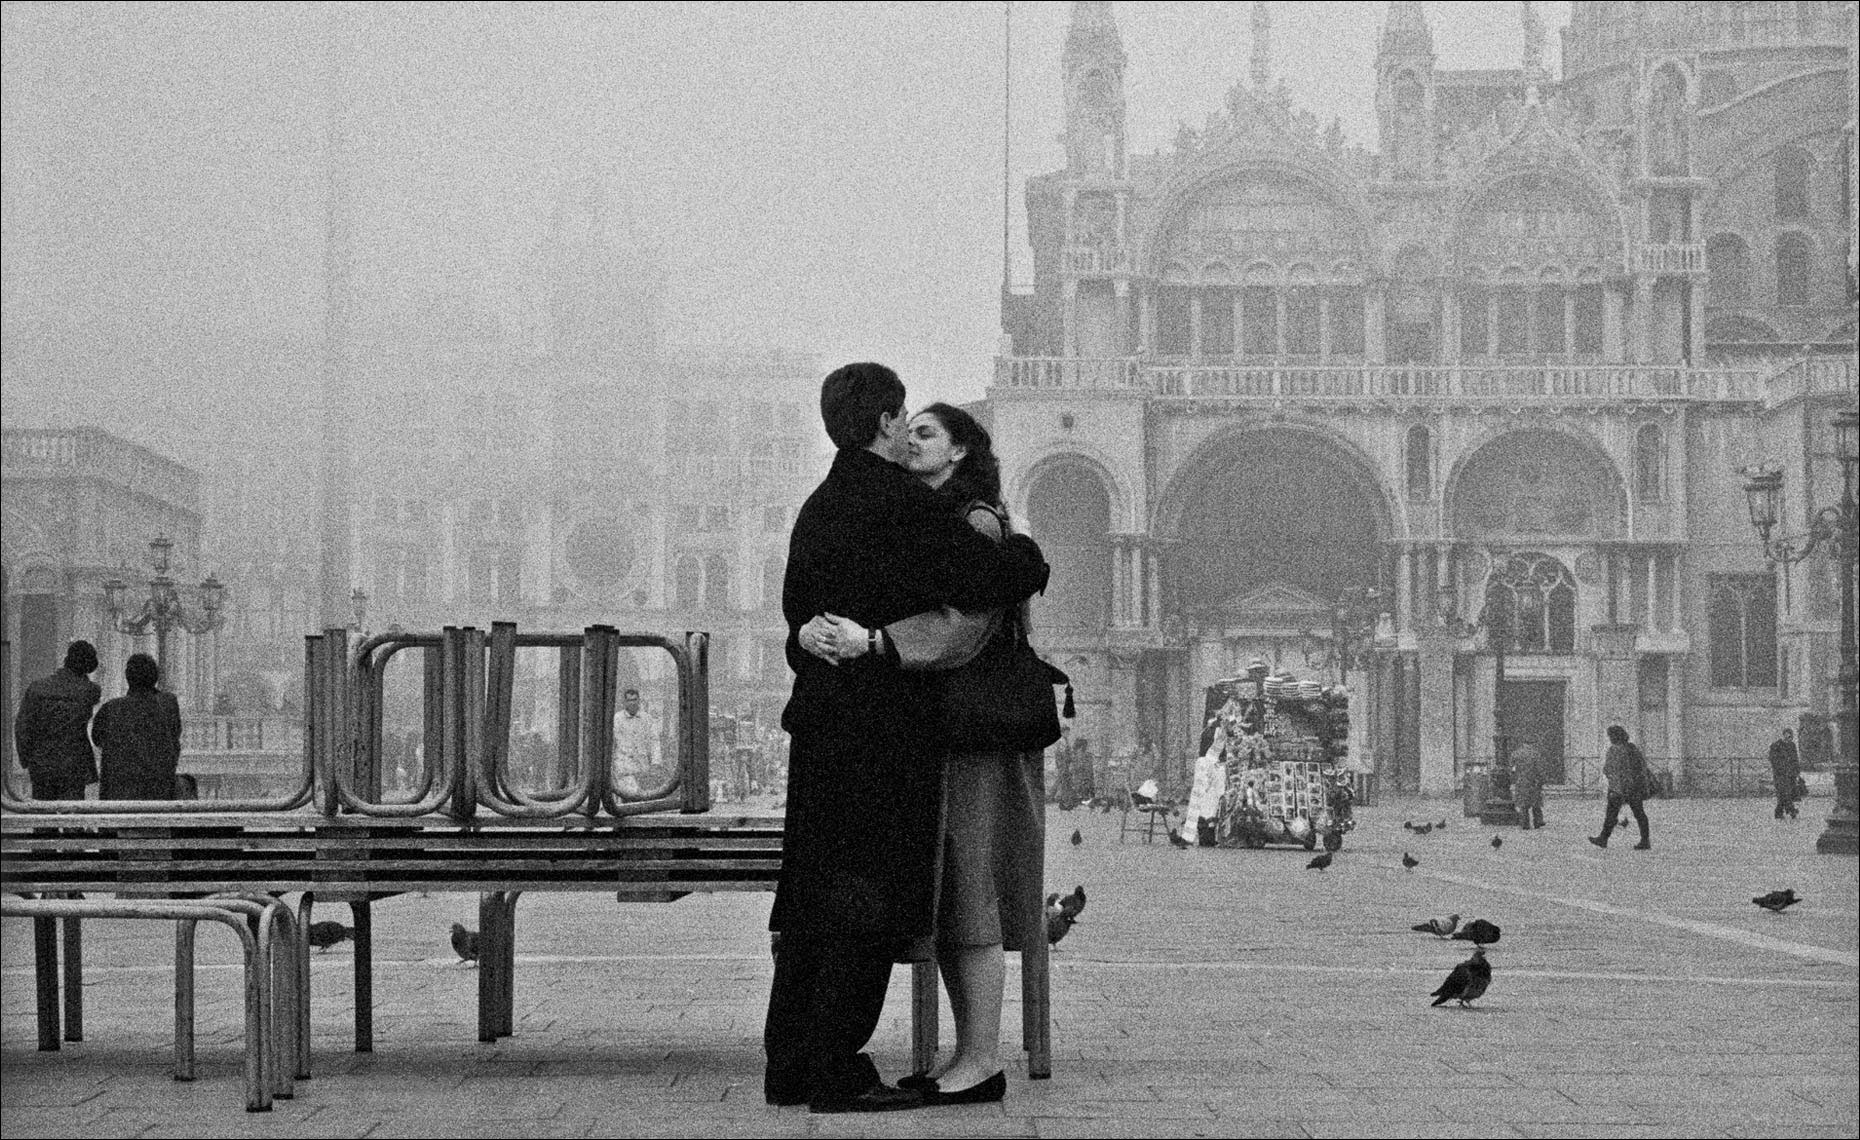 st-marks square couple-kissing, Venice ©Paul Hampton Photographer Glasgow